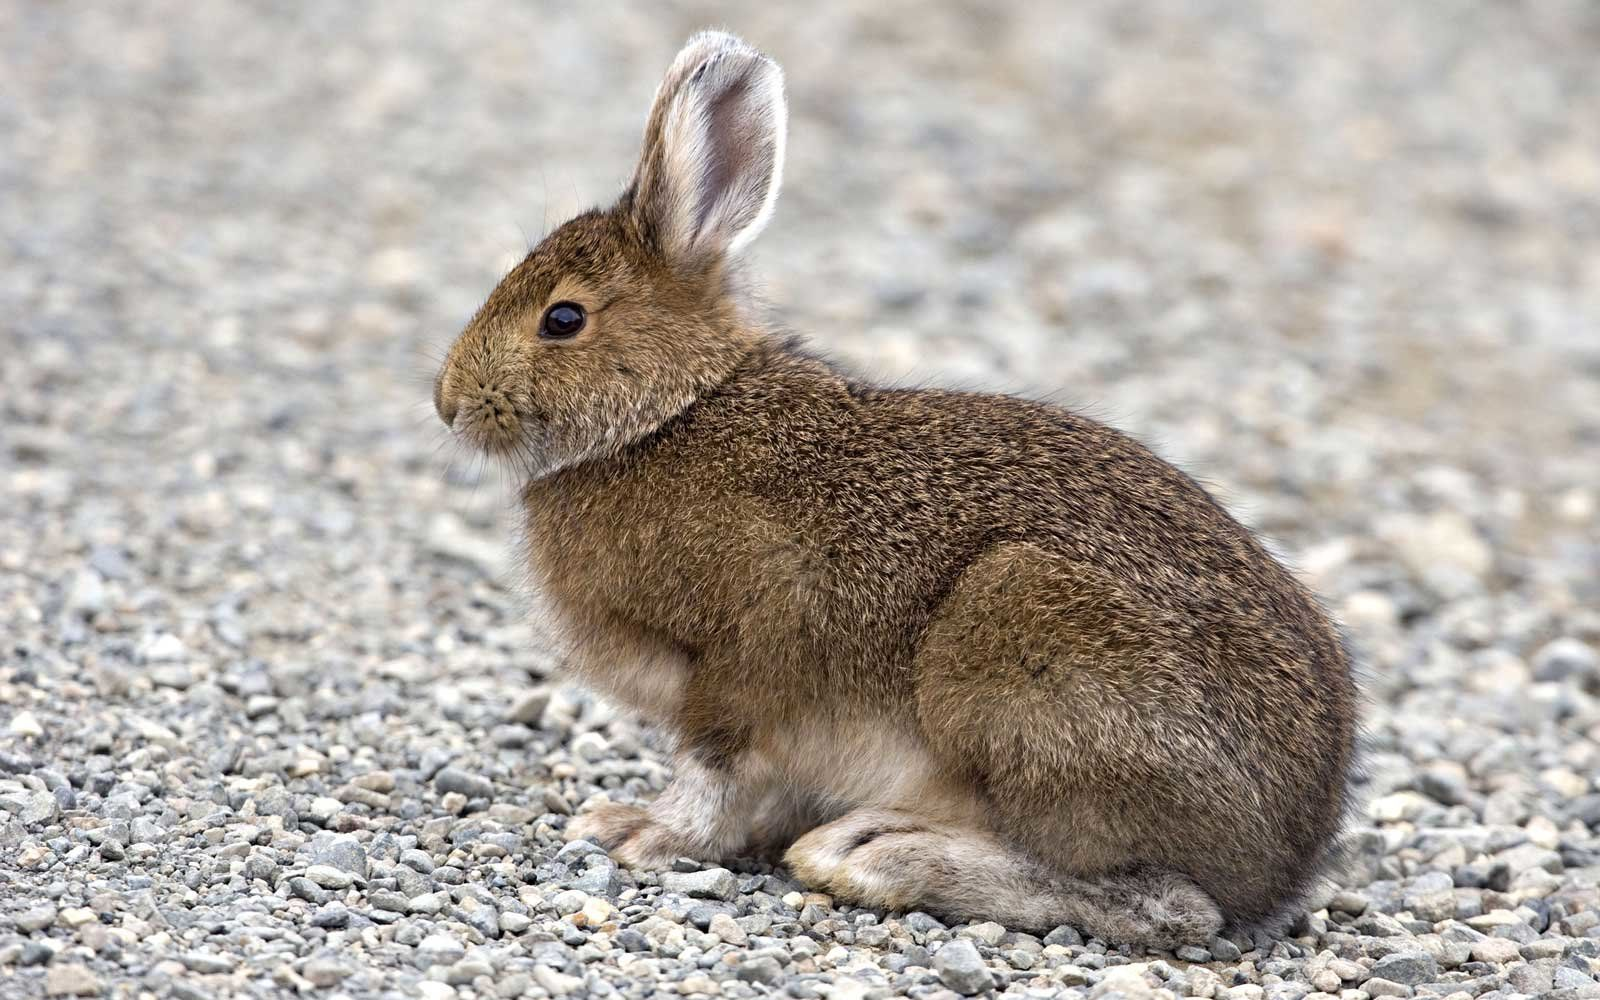 A Baby Rabbit Caused an Airport Bomb Scare and Now Its